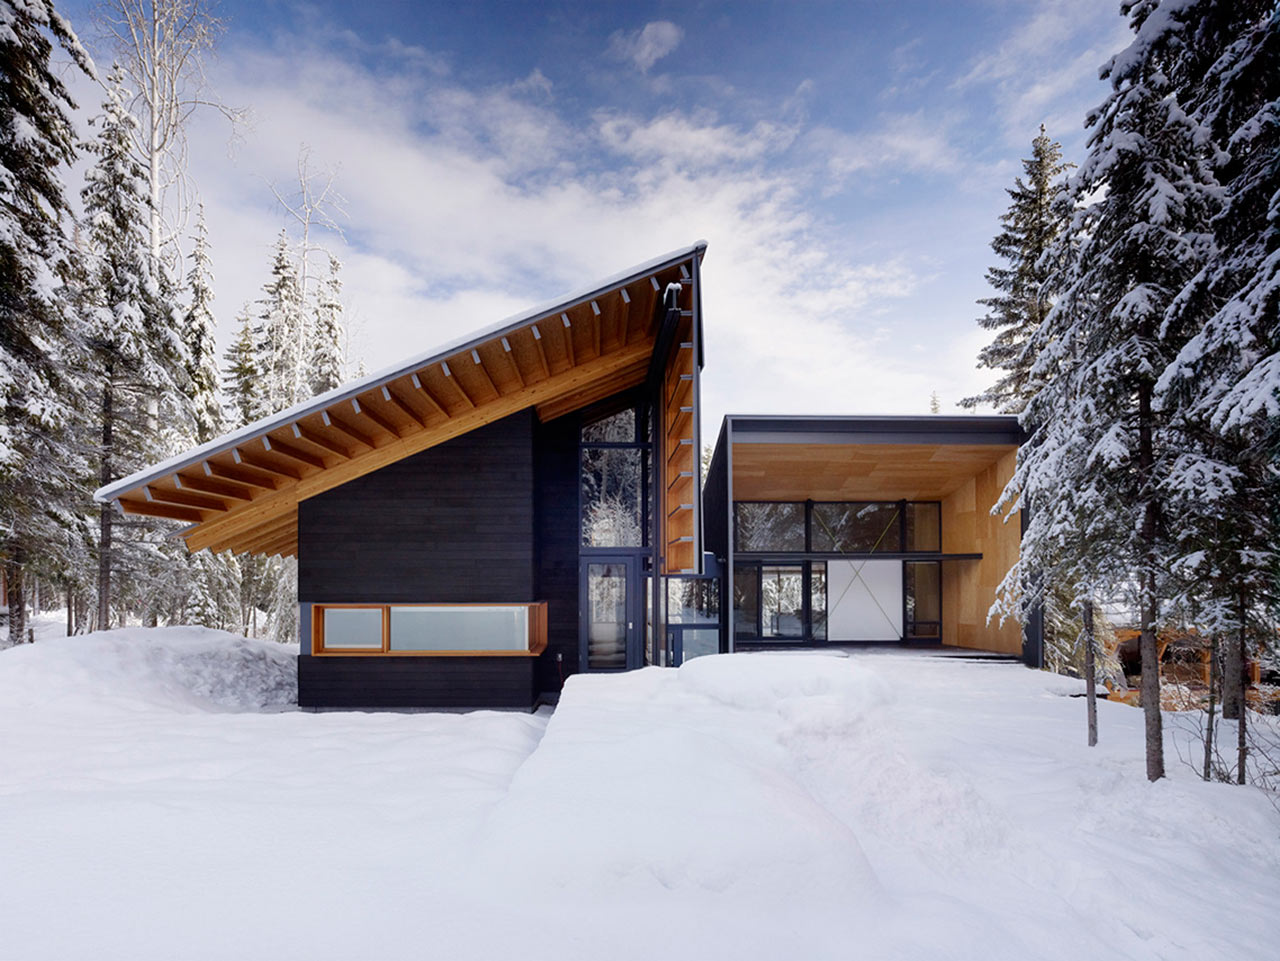 10 Modern Wintry Cabins Wed Be Happy to Hole Up In Design Milk